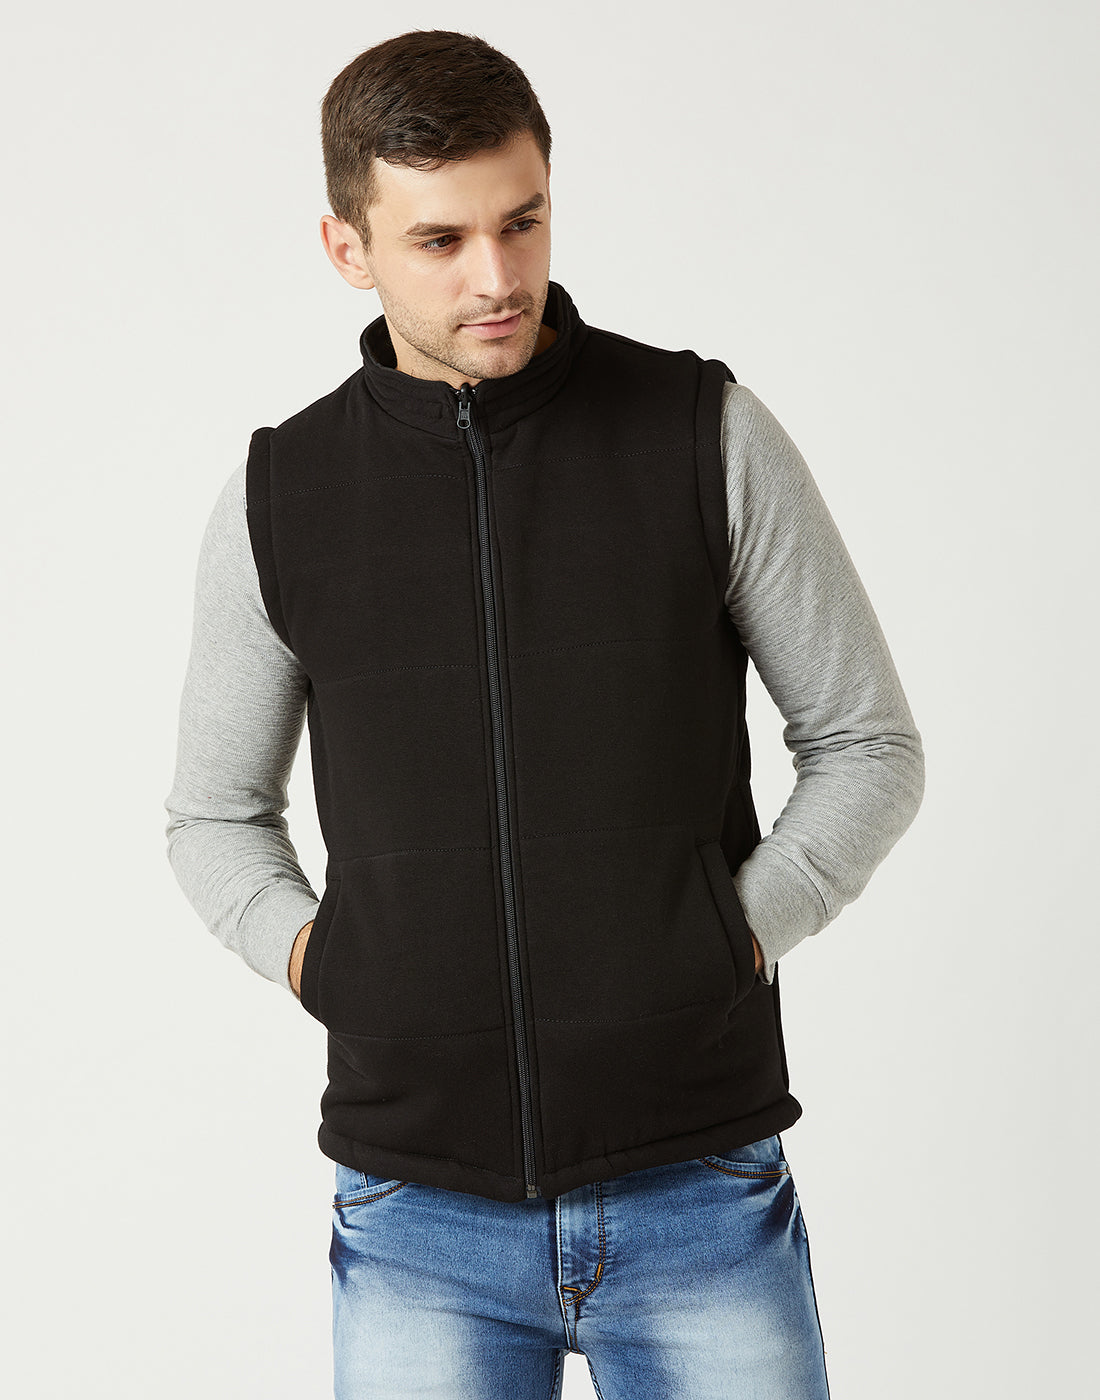 Octave Men Black Reversible Jacket